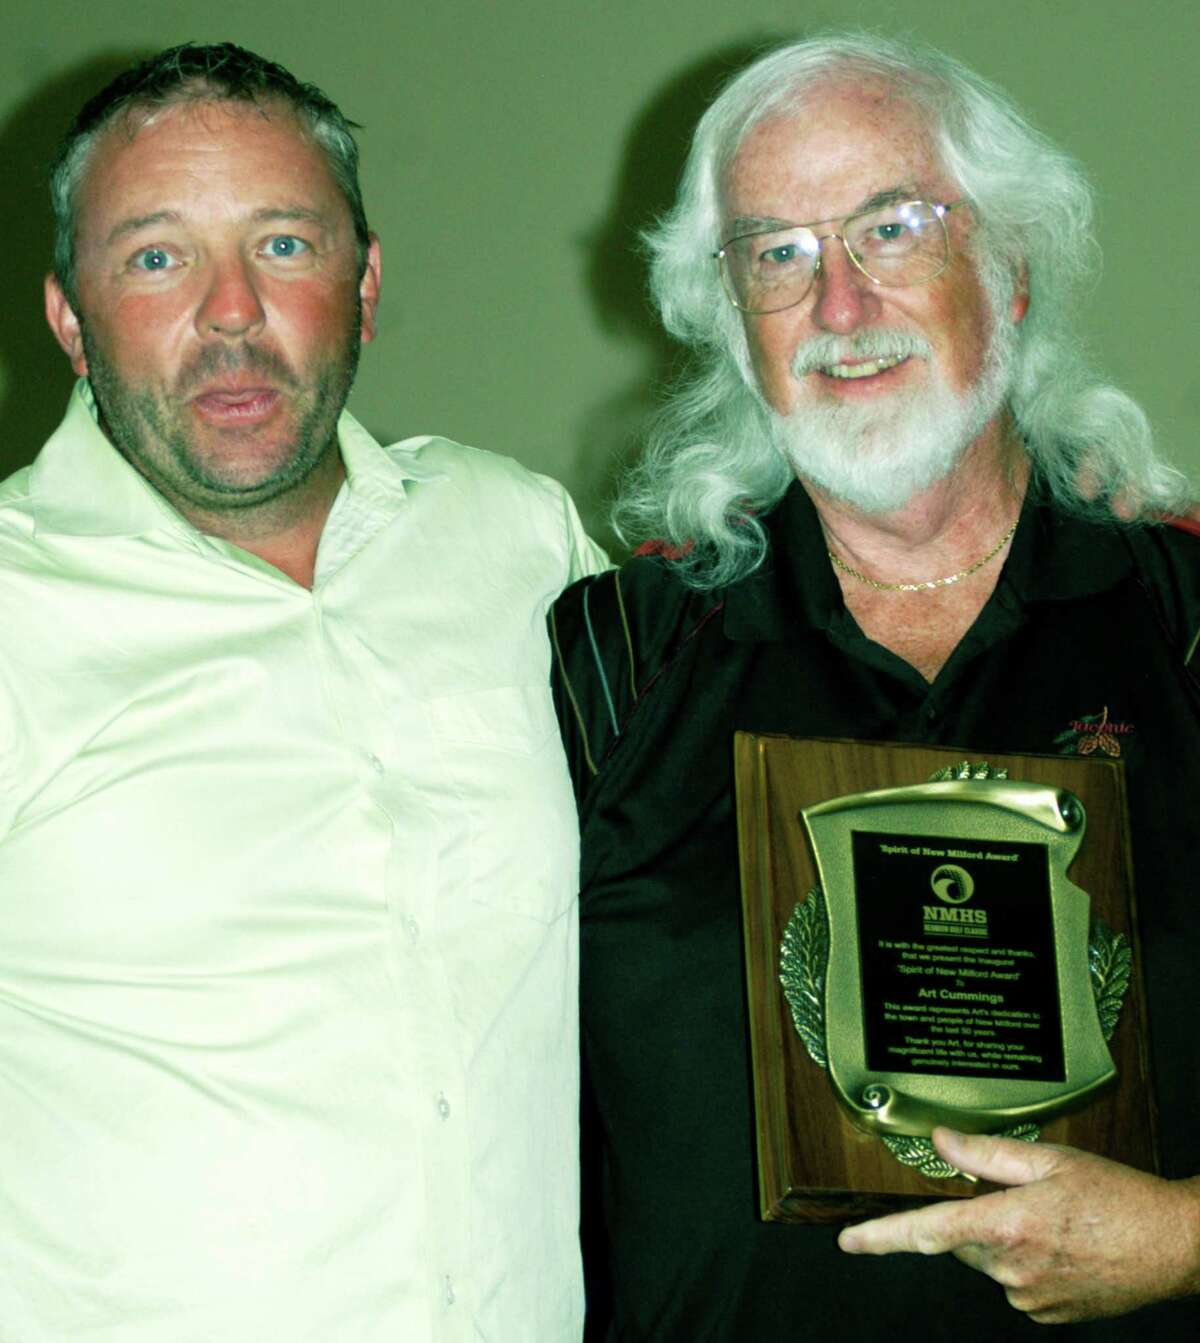 Steve Byrne, left, director of the New Miilford High School Reunion Classic golf tournament, poses with Art Cummings, the event's inaugural